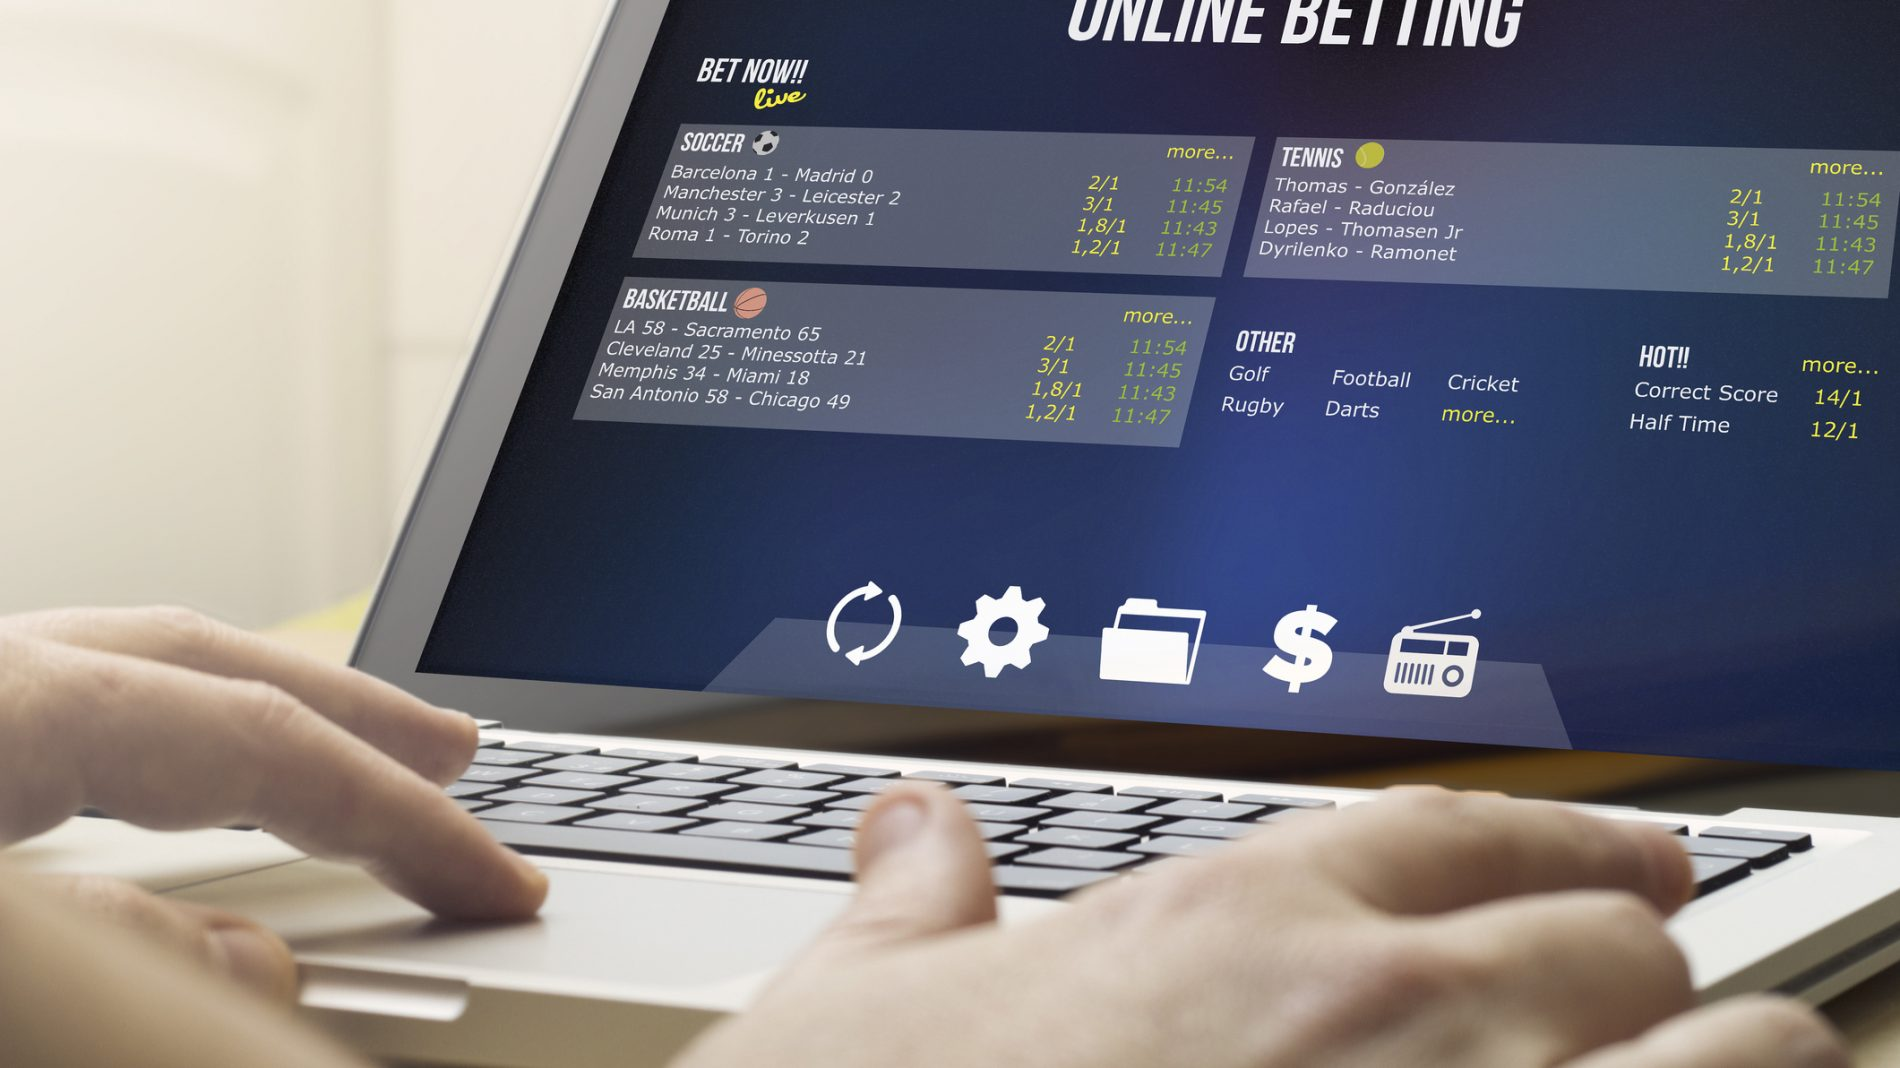 betting online on a laptop